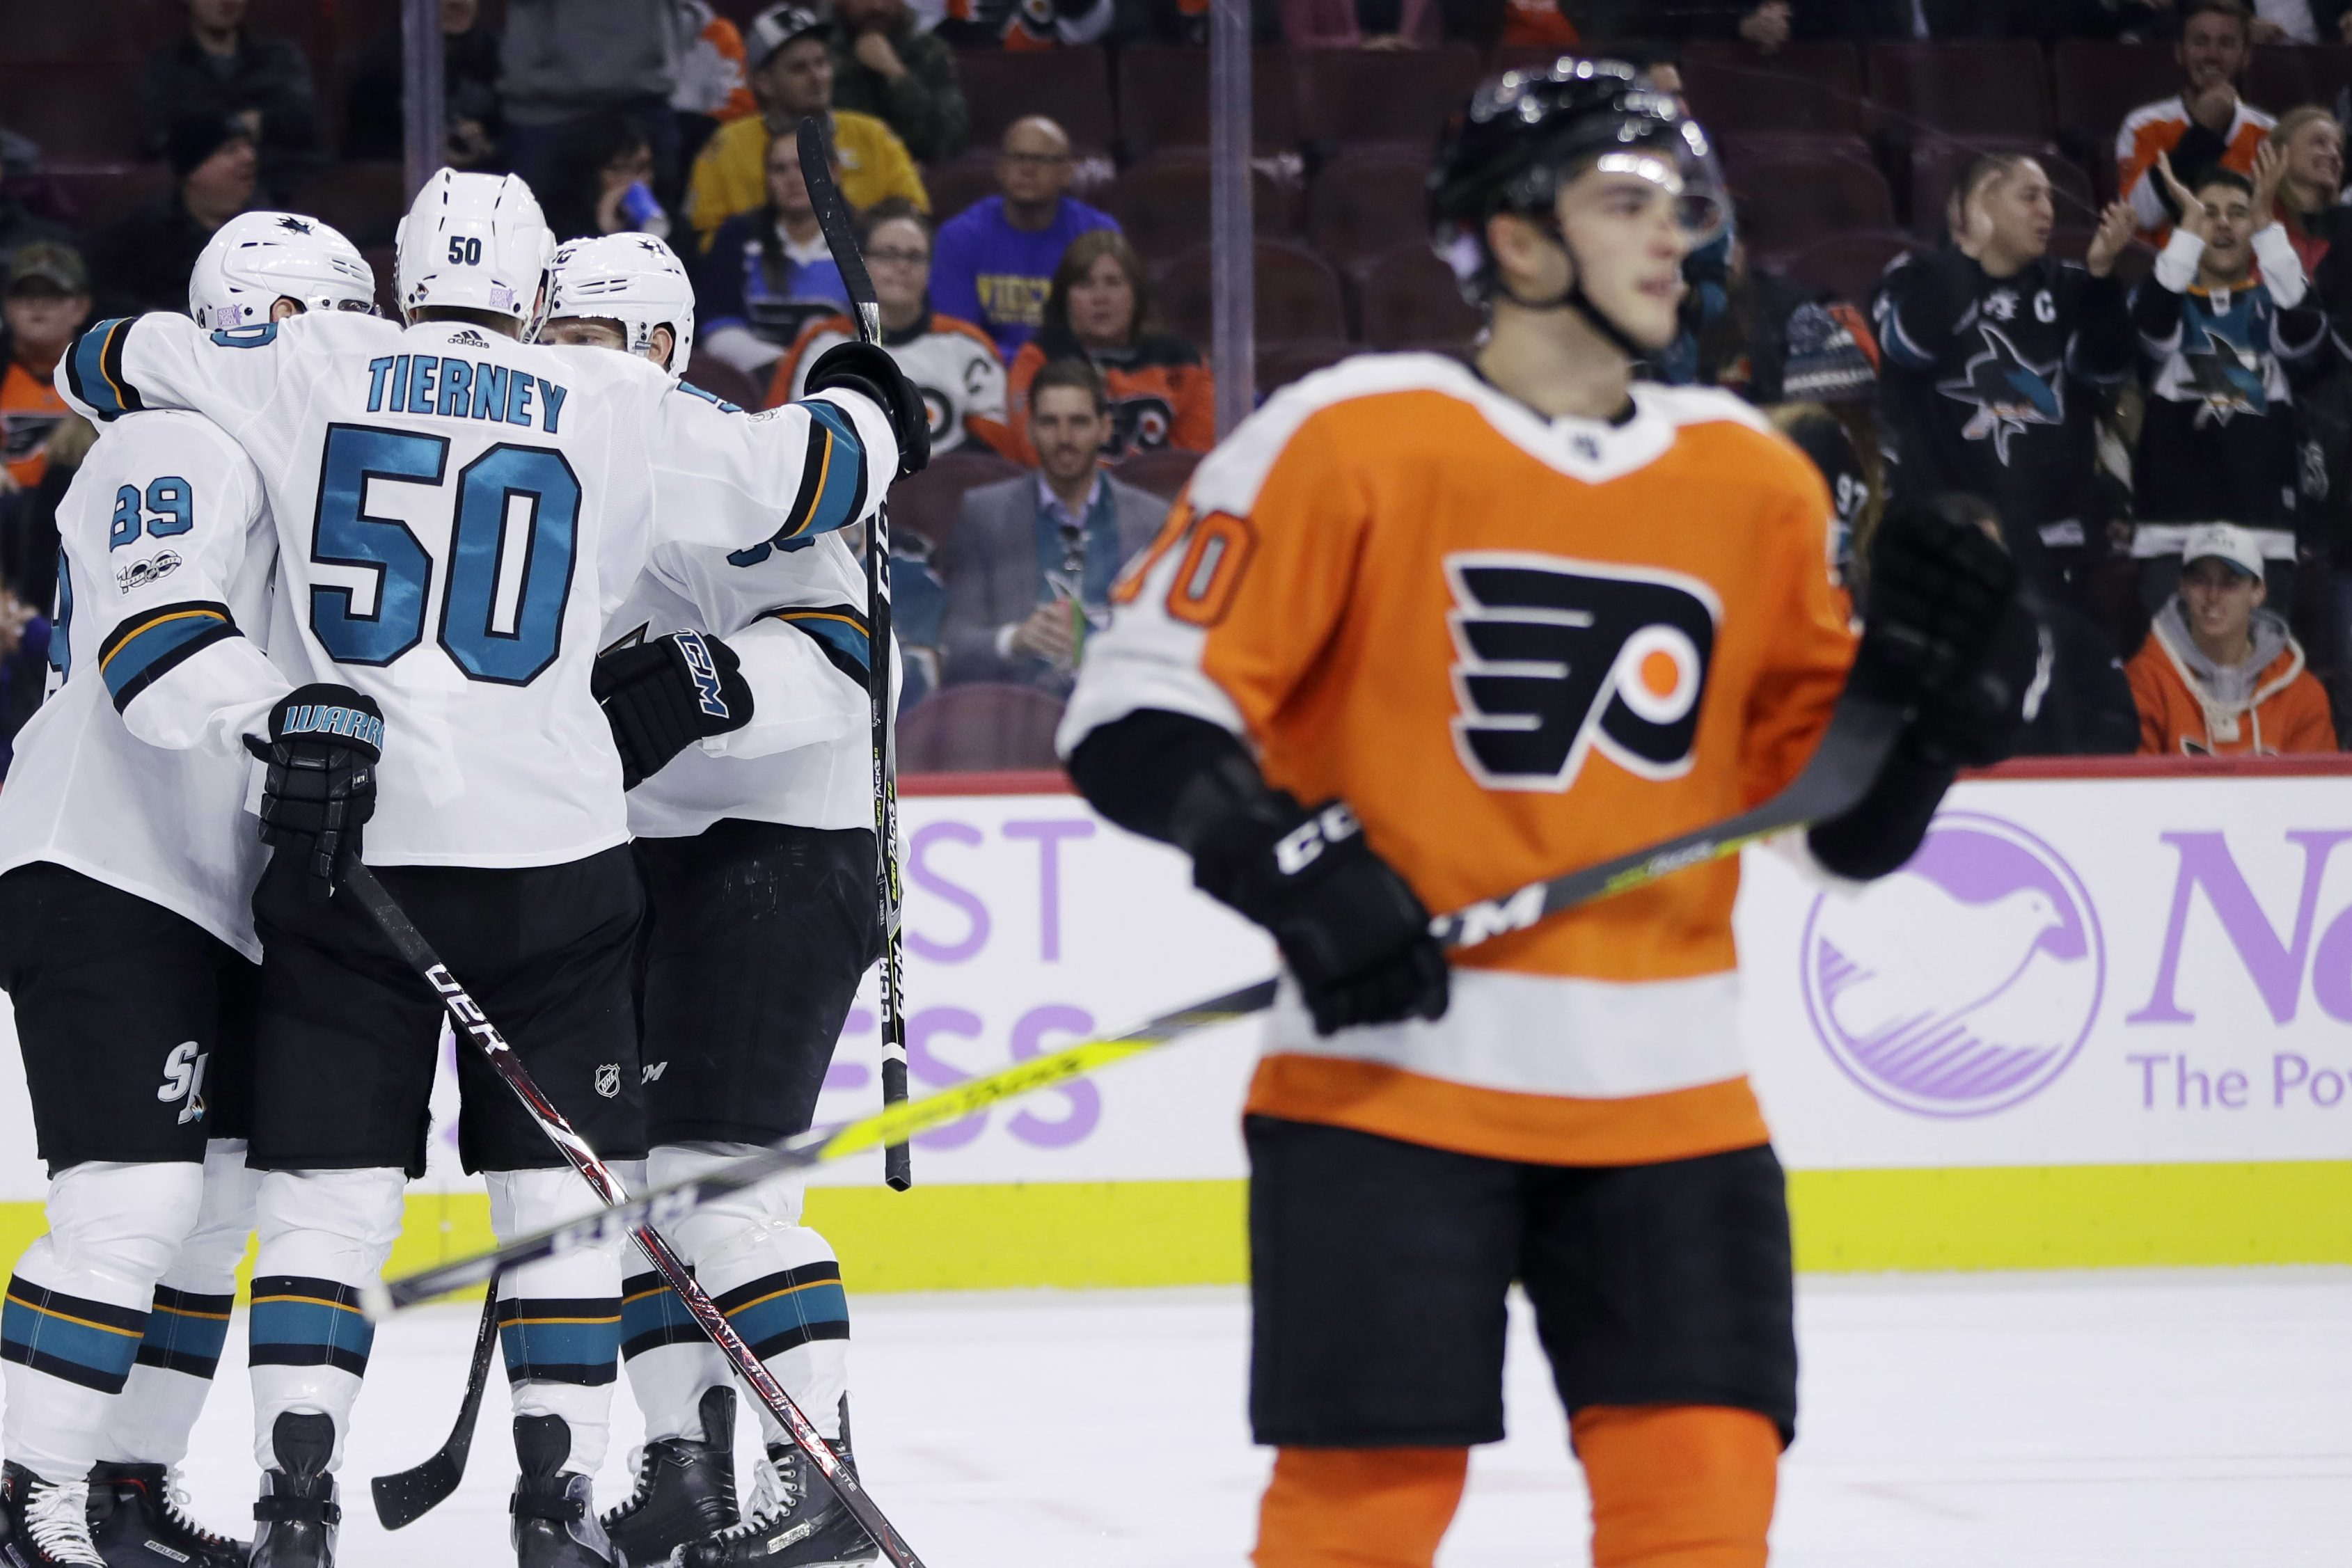 San Jose´s Chris Tierney (50) celebrates with his teammates as Danick Martel (70) looks on dejectedly in the Flyers´ 3-1 loss Tuesday.